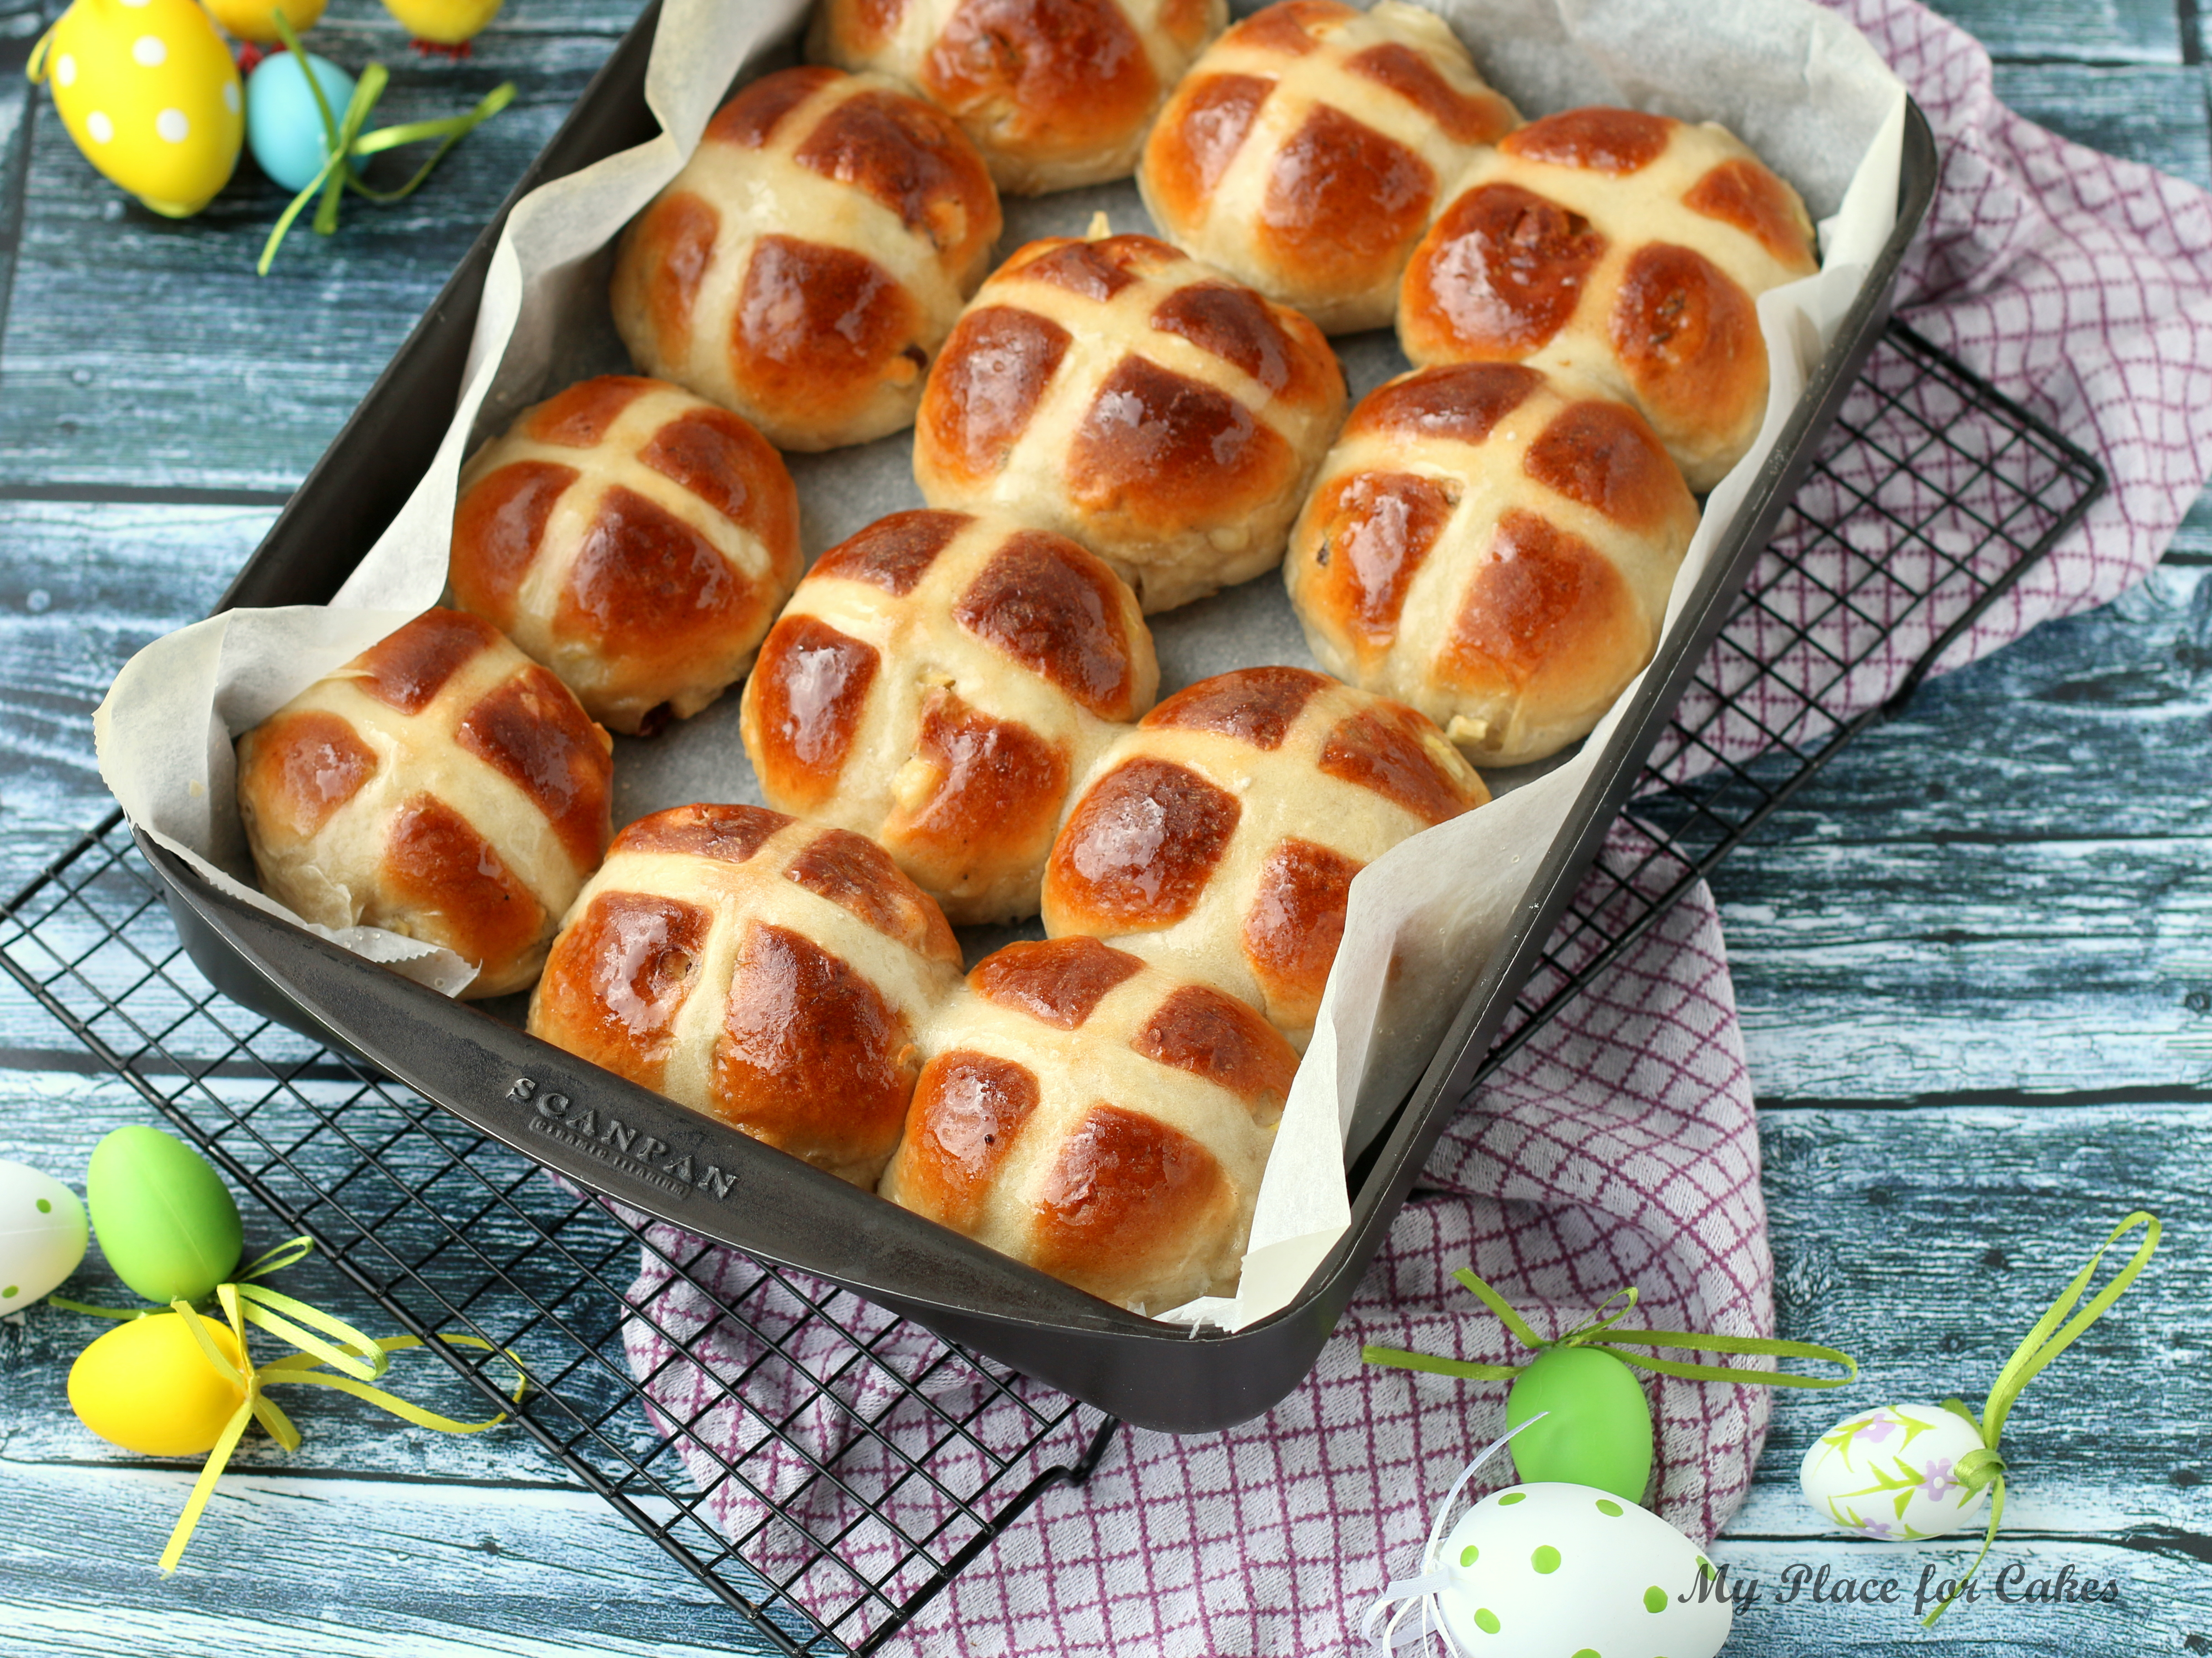 Hot cross buns - påske